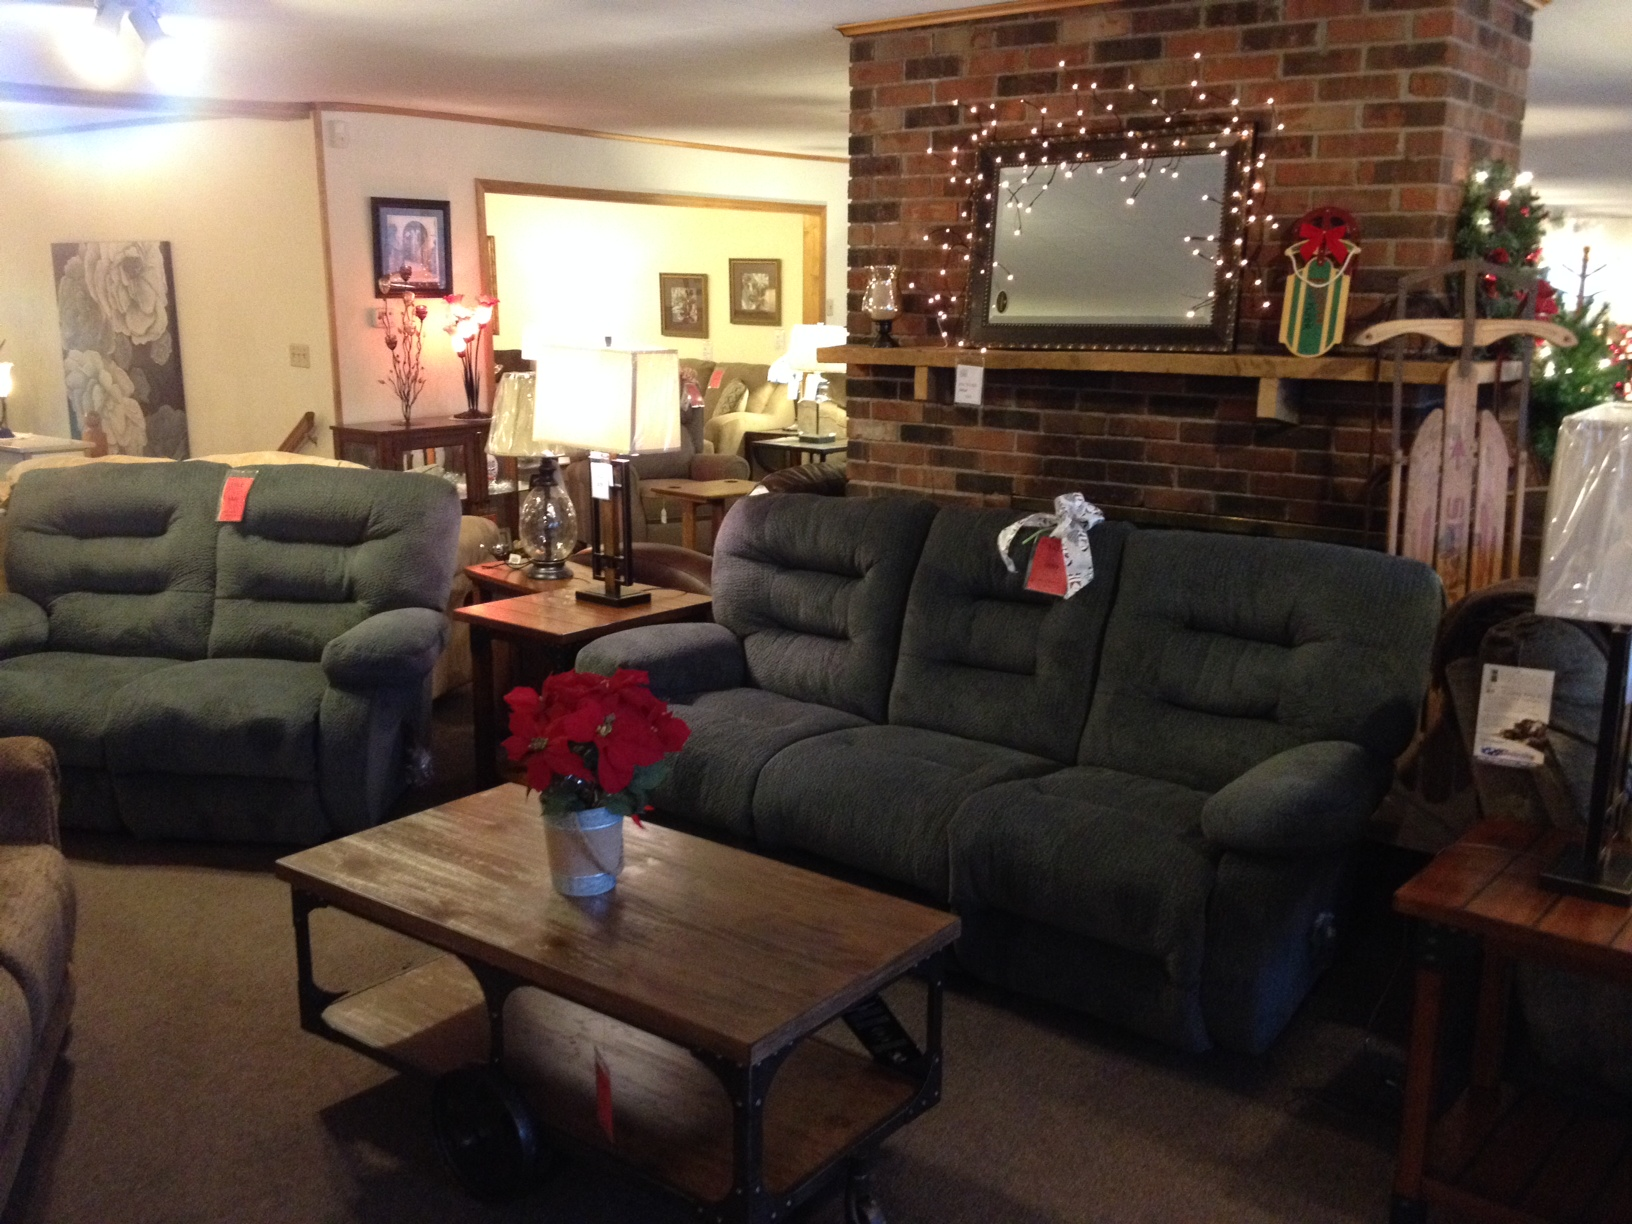 Ashley Furniture Stores >> Living Room Furniture & Home Decor: Battle Creek, MI | Russell's Country Store